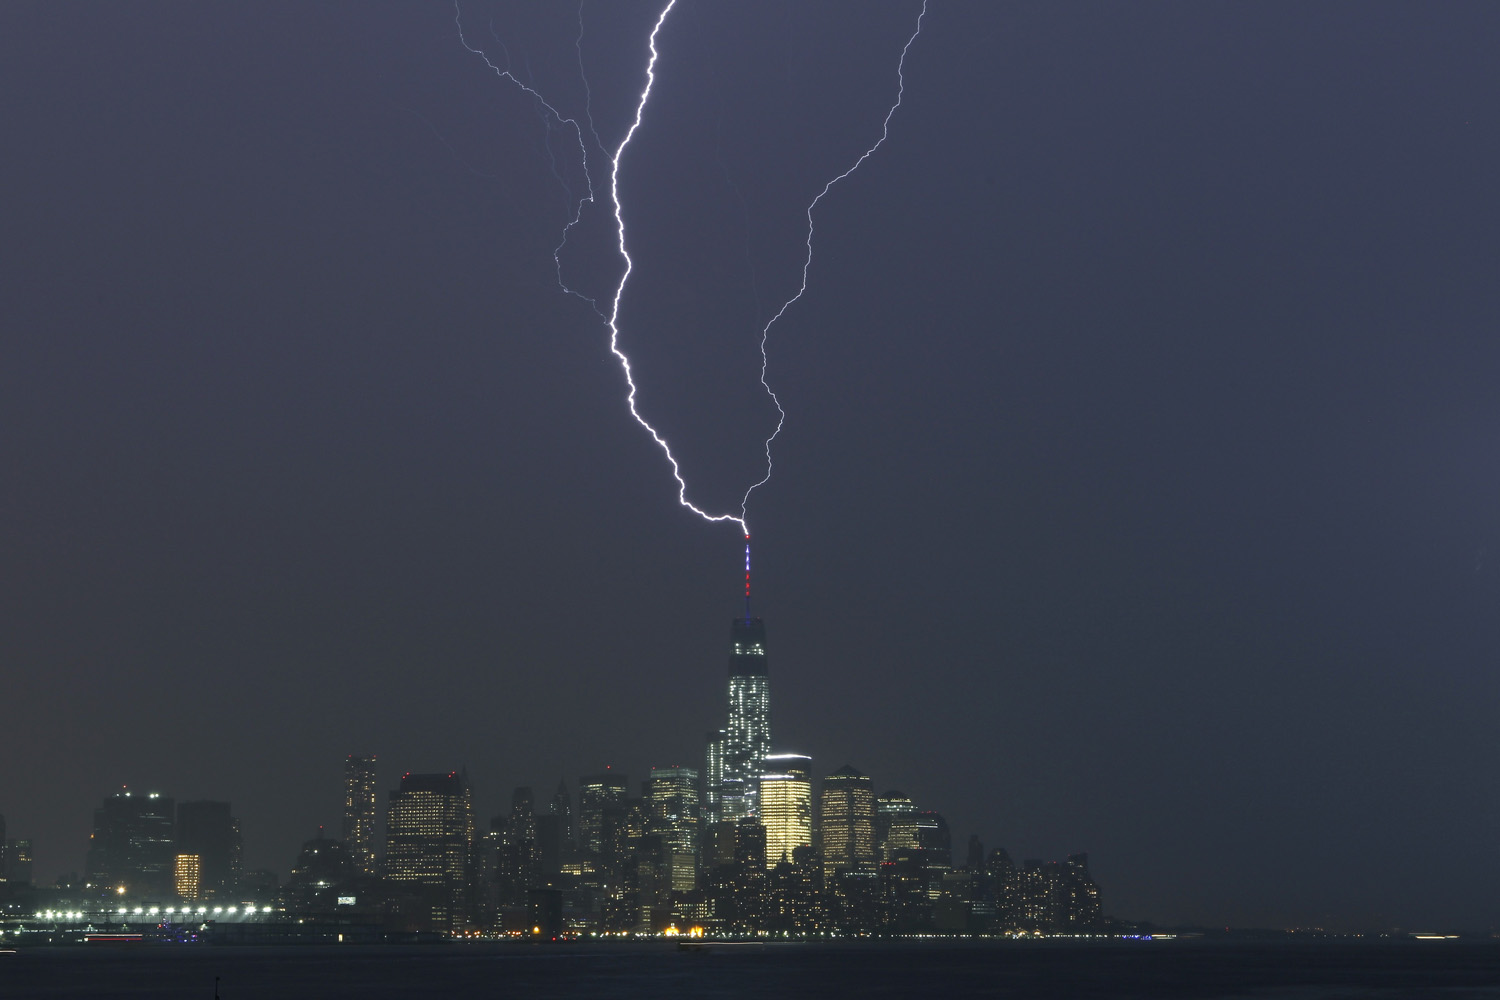 May 23, 2014. Two bolts of lightning hit the antenna on top of One World Trade Center in Lower Manhattan as an electrical storm moves over New York.